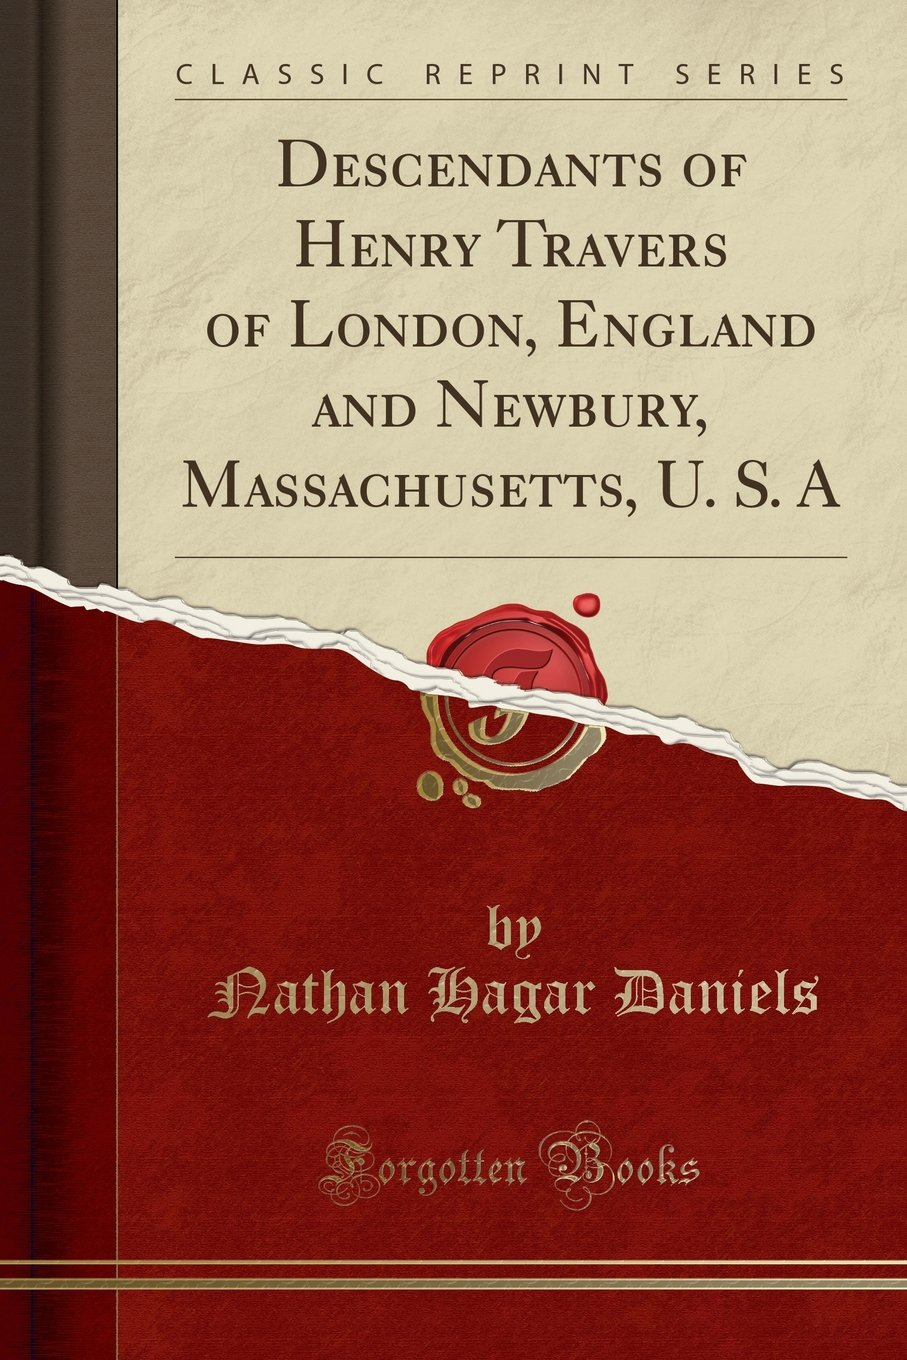 Descendants of Henry Travers of London, England and Newbury, Massachusetts, U. S. A (Classic Reprint) pdf epub